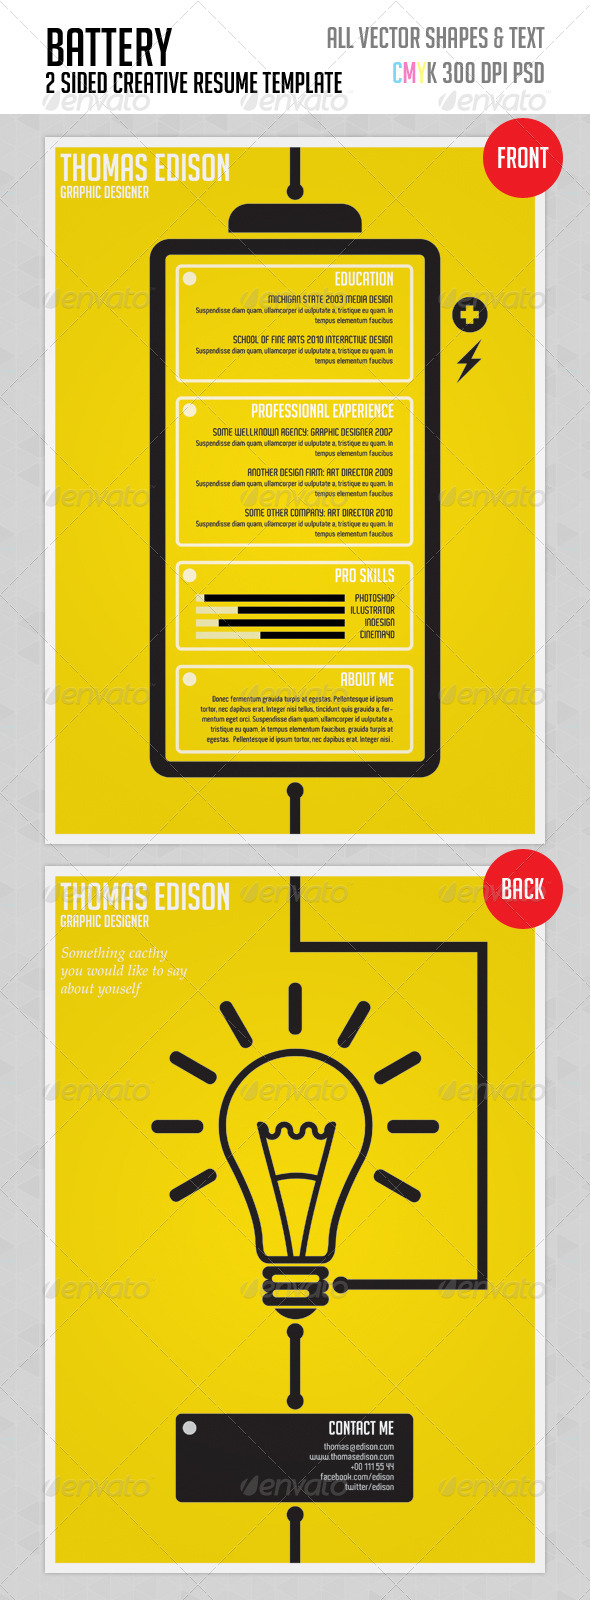 GraphicRiver Battery Creative Resume Template 4222203